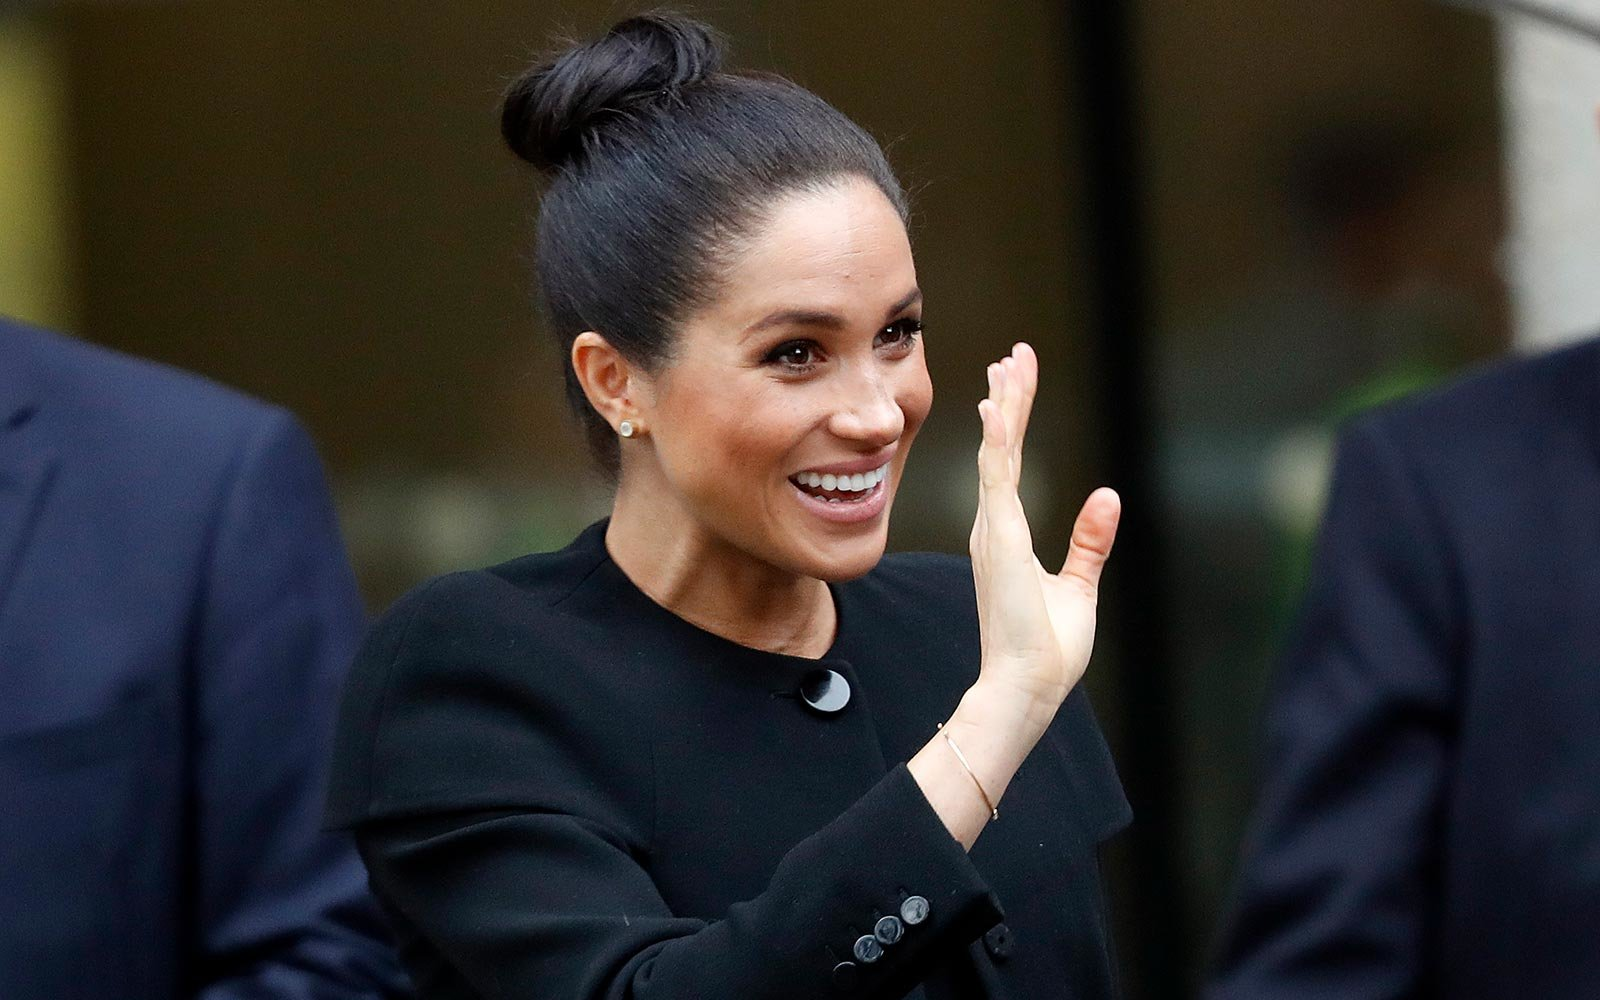 Meghan and Harry Will Likely Announce the Birth of Their Baby in This Thoroughly Modern Way